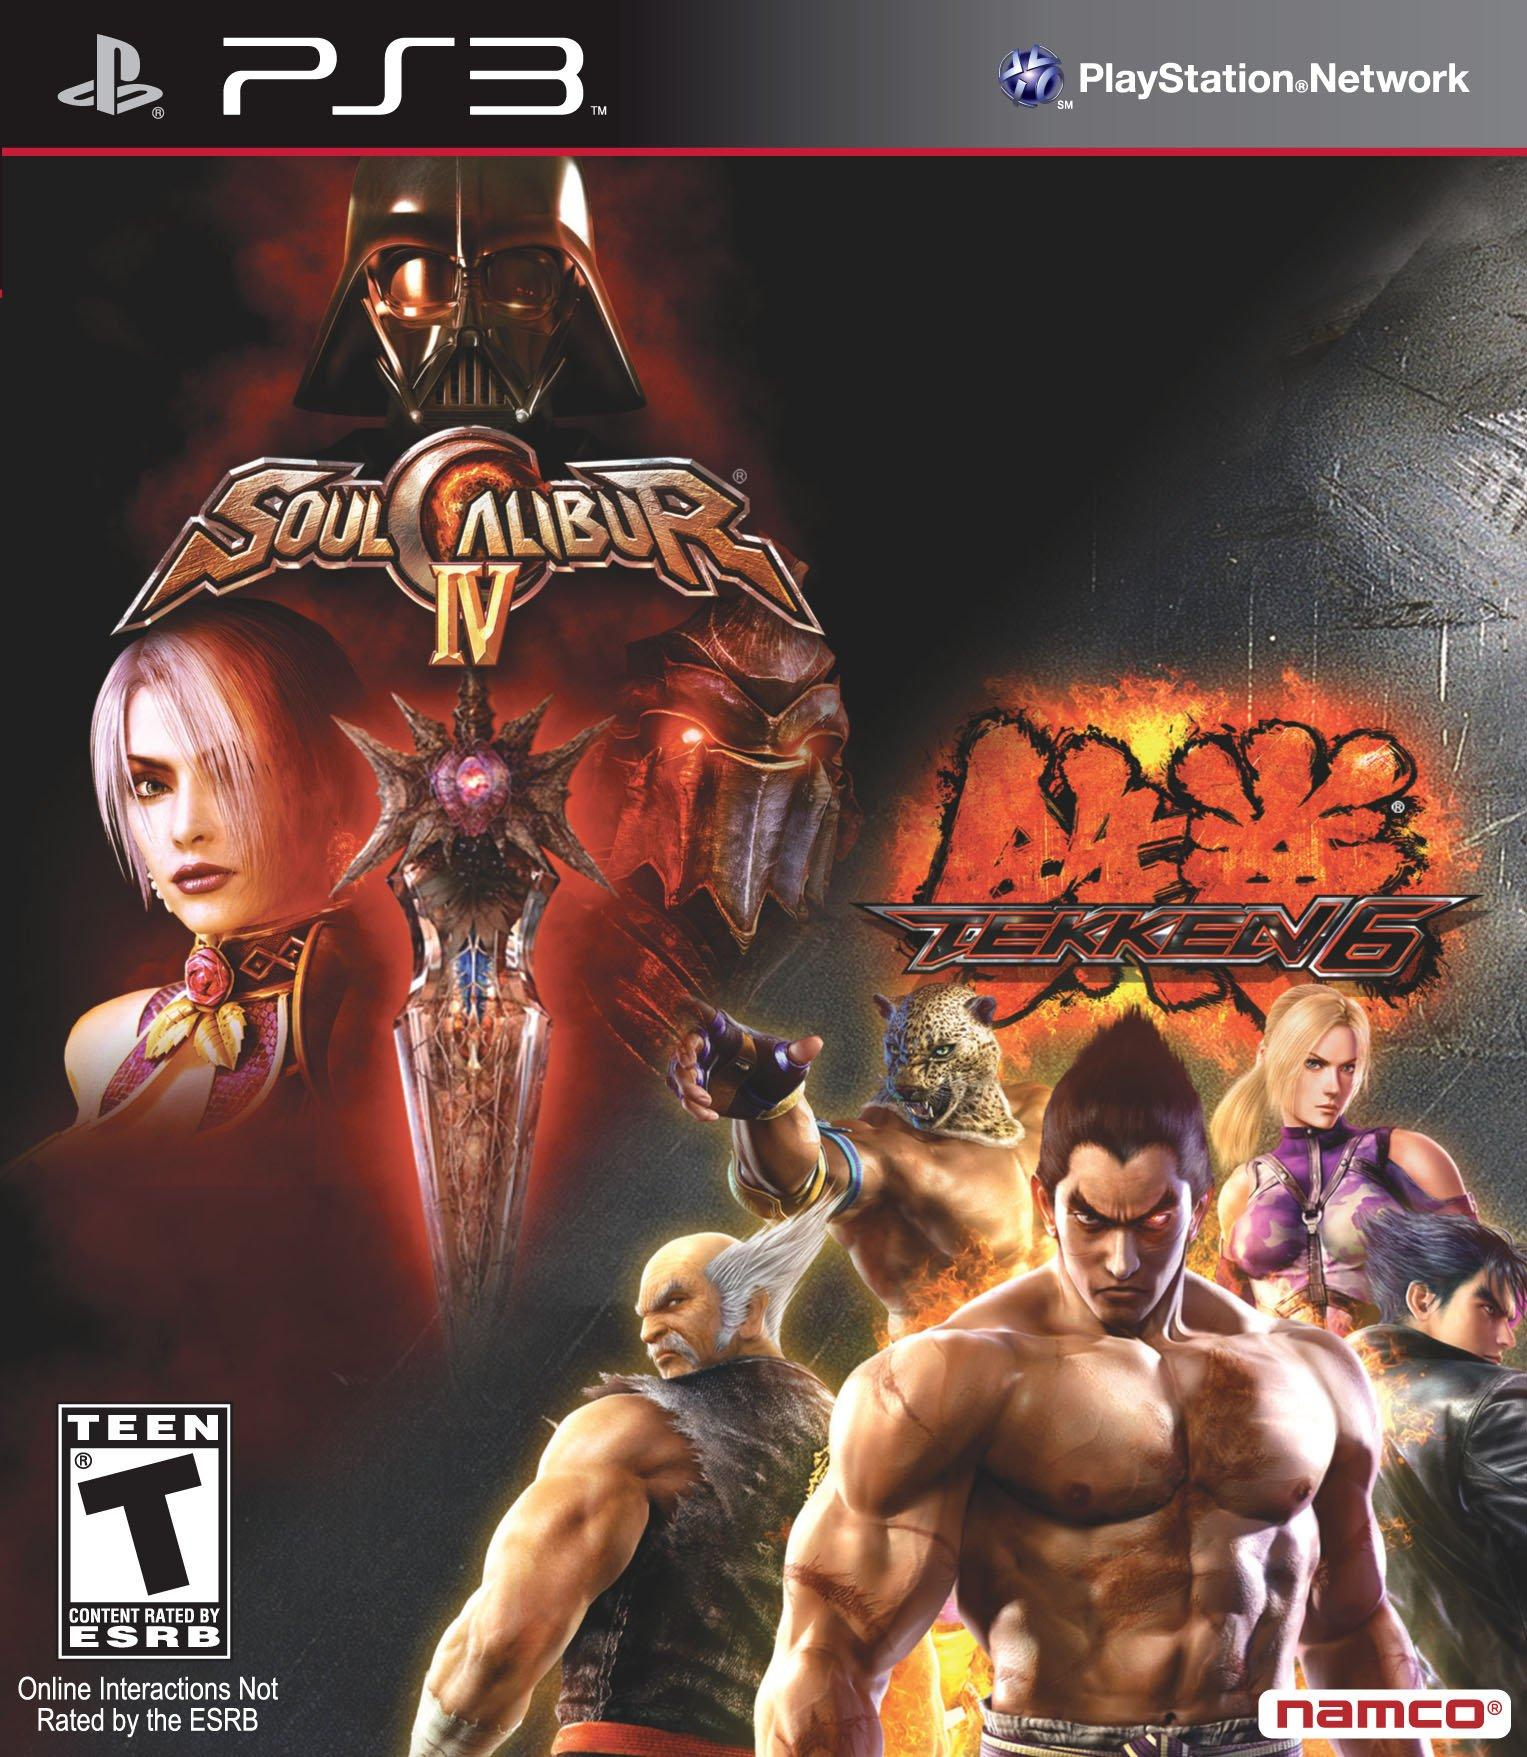 Soulcalibur 4 And Tekken 6 Bundle Playstation 3 Gamestop